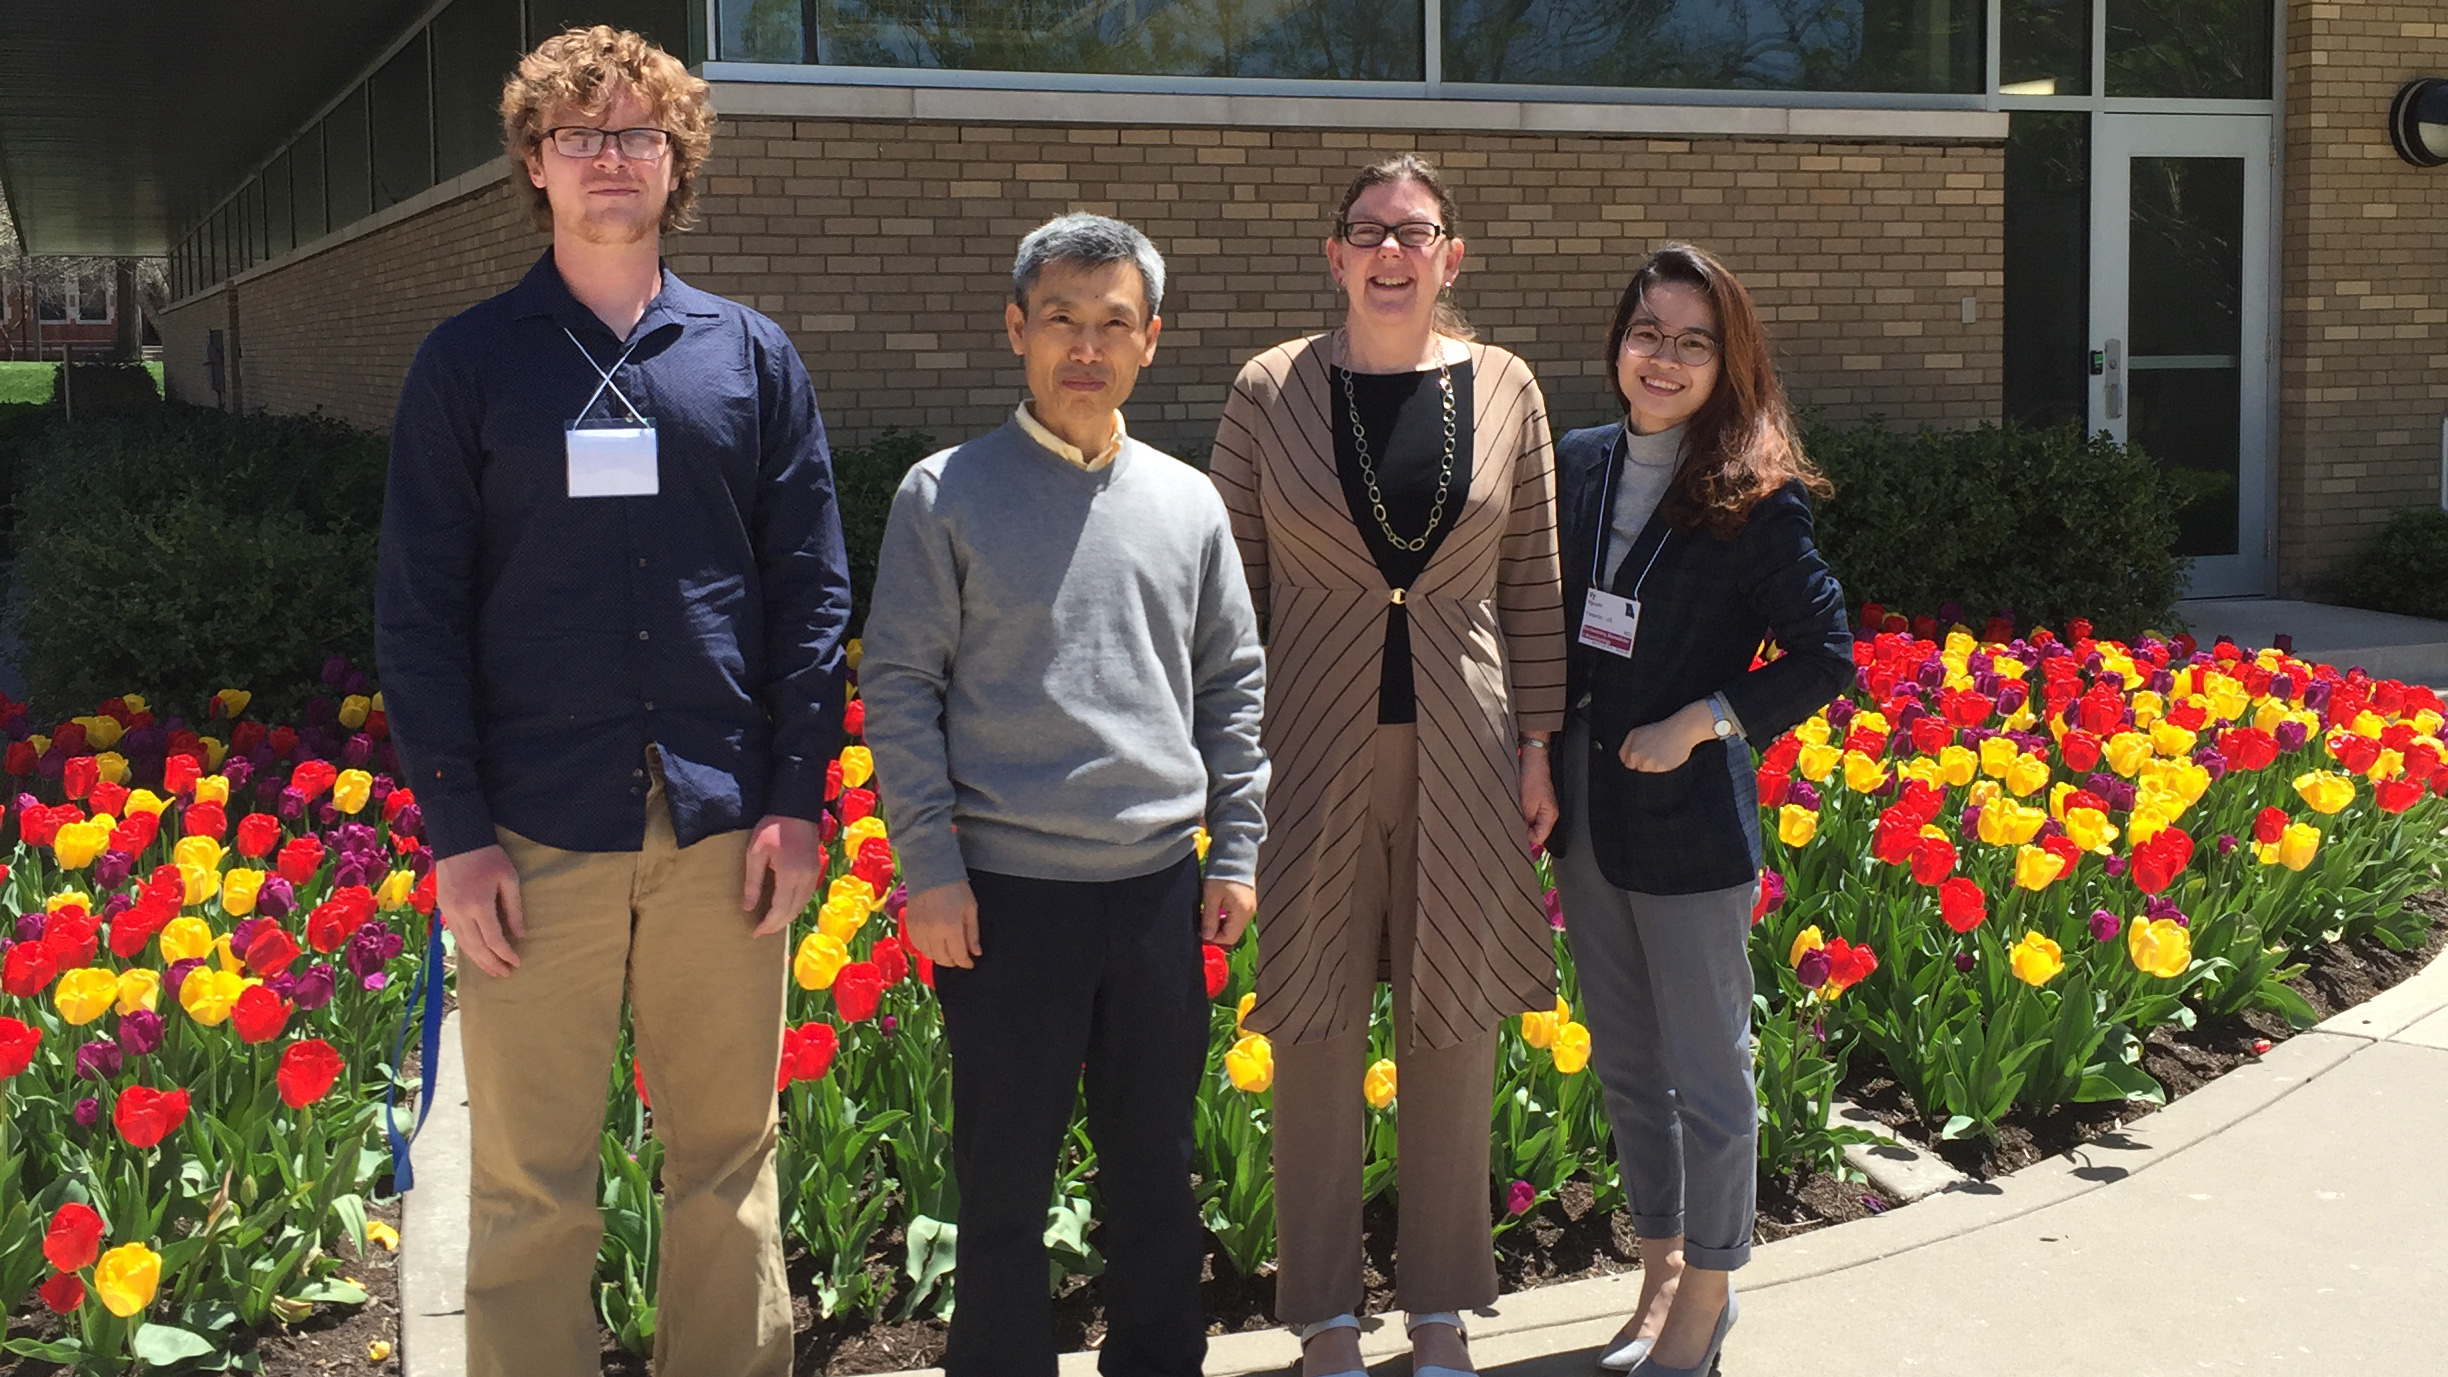 Cullen Horstmann, Dr. Kyoungtae Kim, Dr. Tamera Jahnke and Vy Nguyen pose for a photo